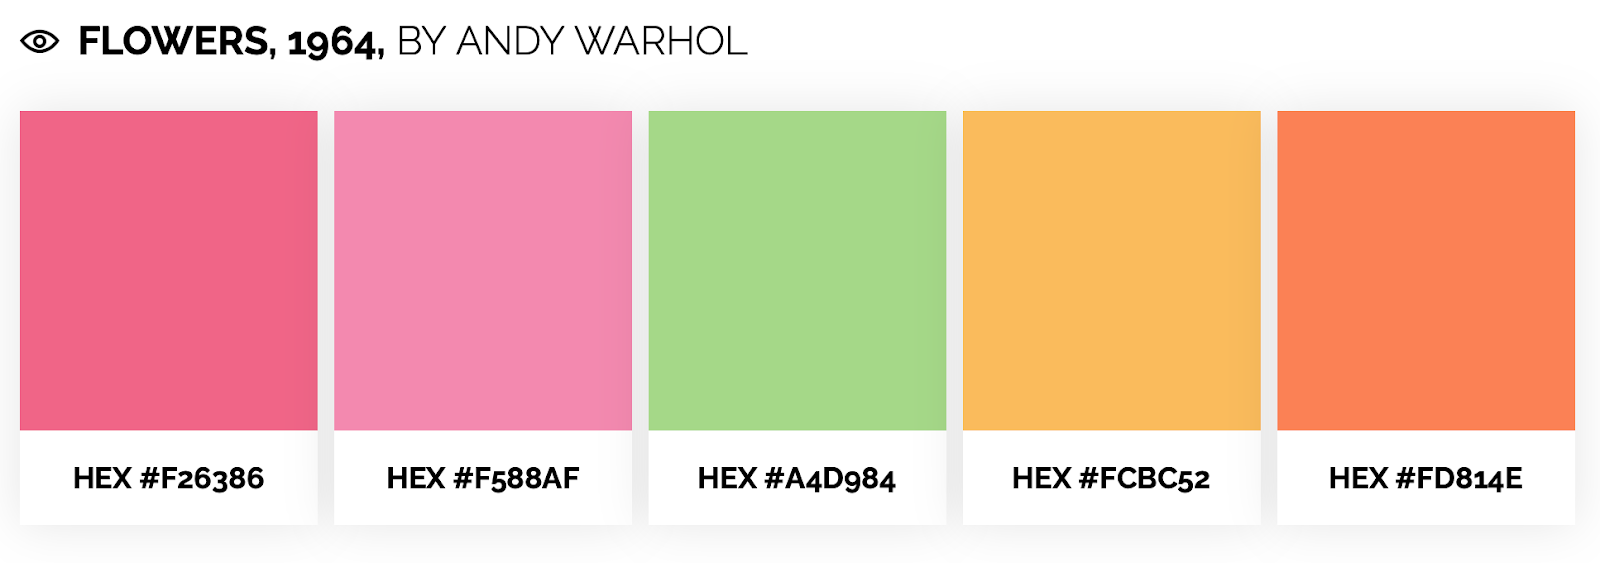 Bright color palette inspired by andy warhol